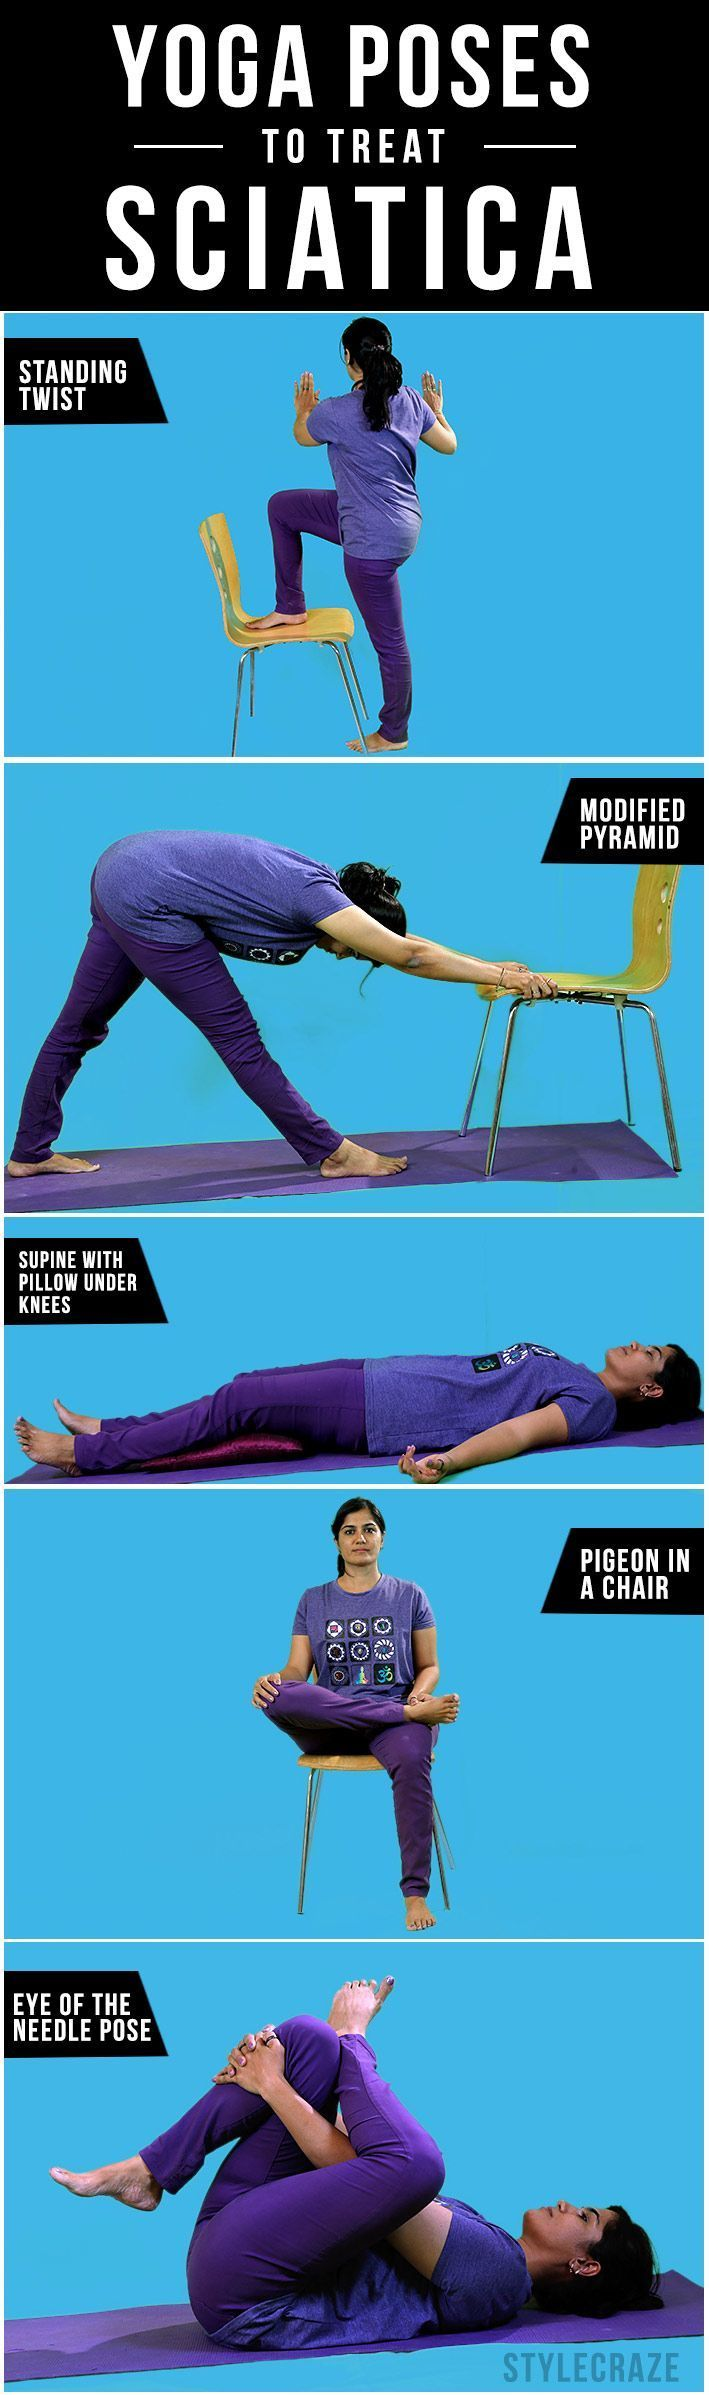 Sciatica Treatment: 8 Instant Relieving Yoga Asanas For Sciatica